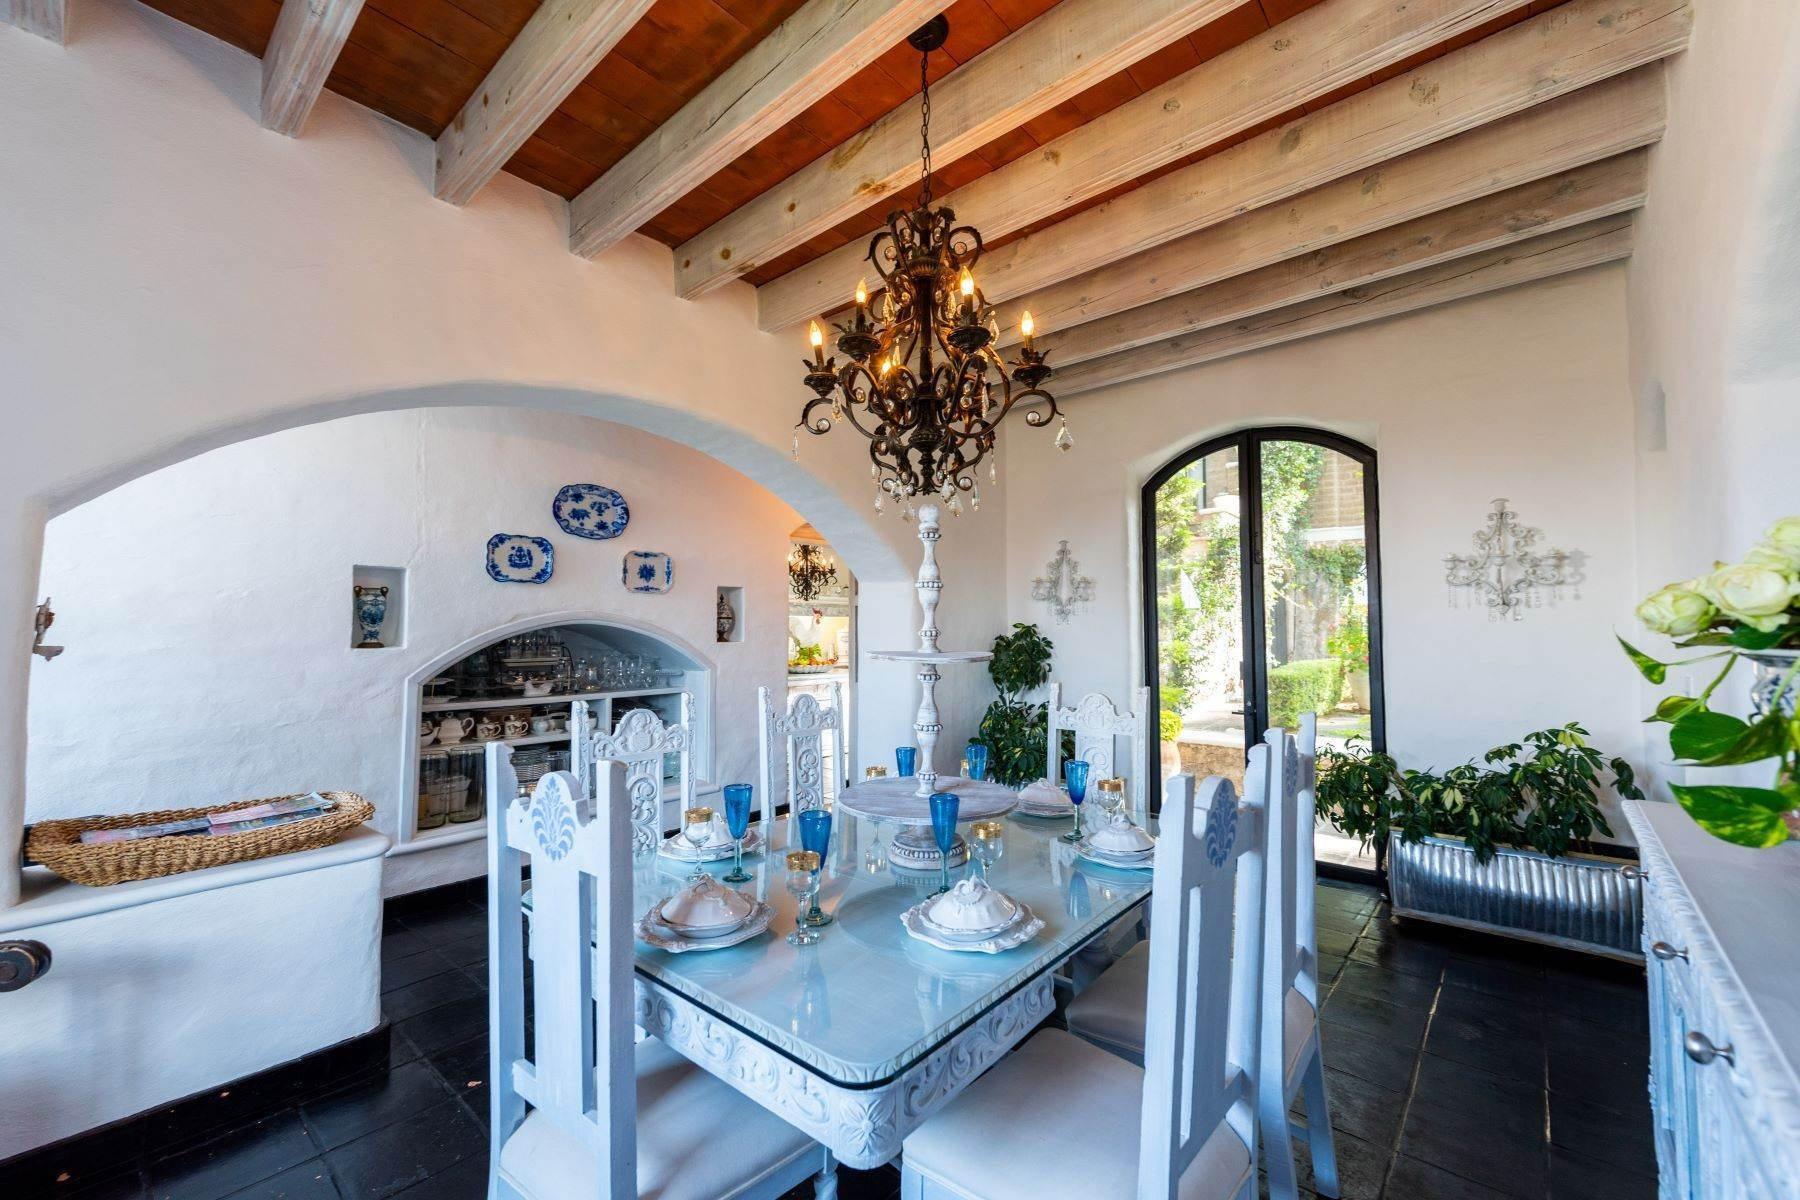 27. Single Family Homes for Sale at Casa Mi Besito Atascadero, San Miguel De Allende, Guanajuato Mexico